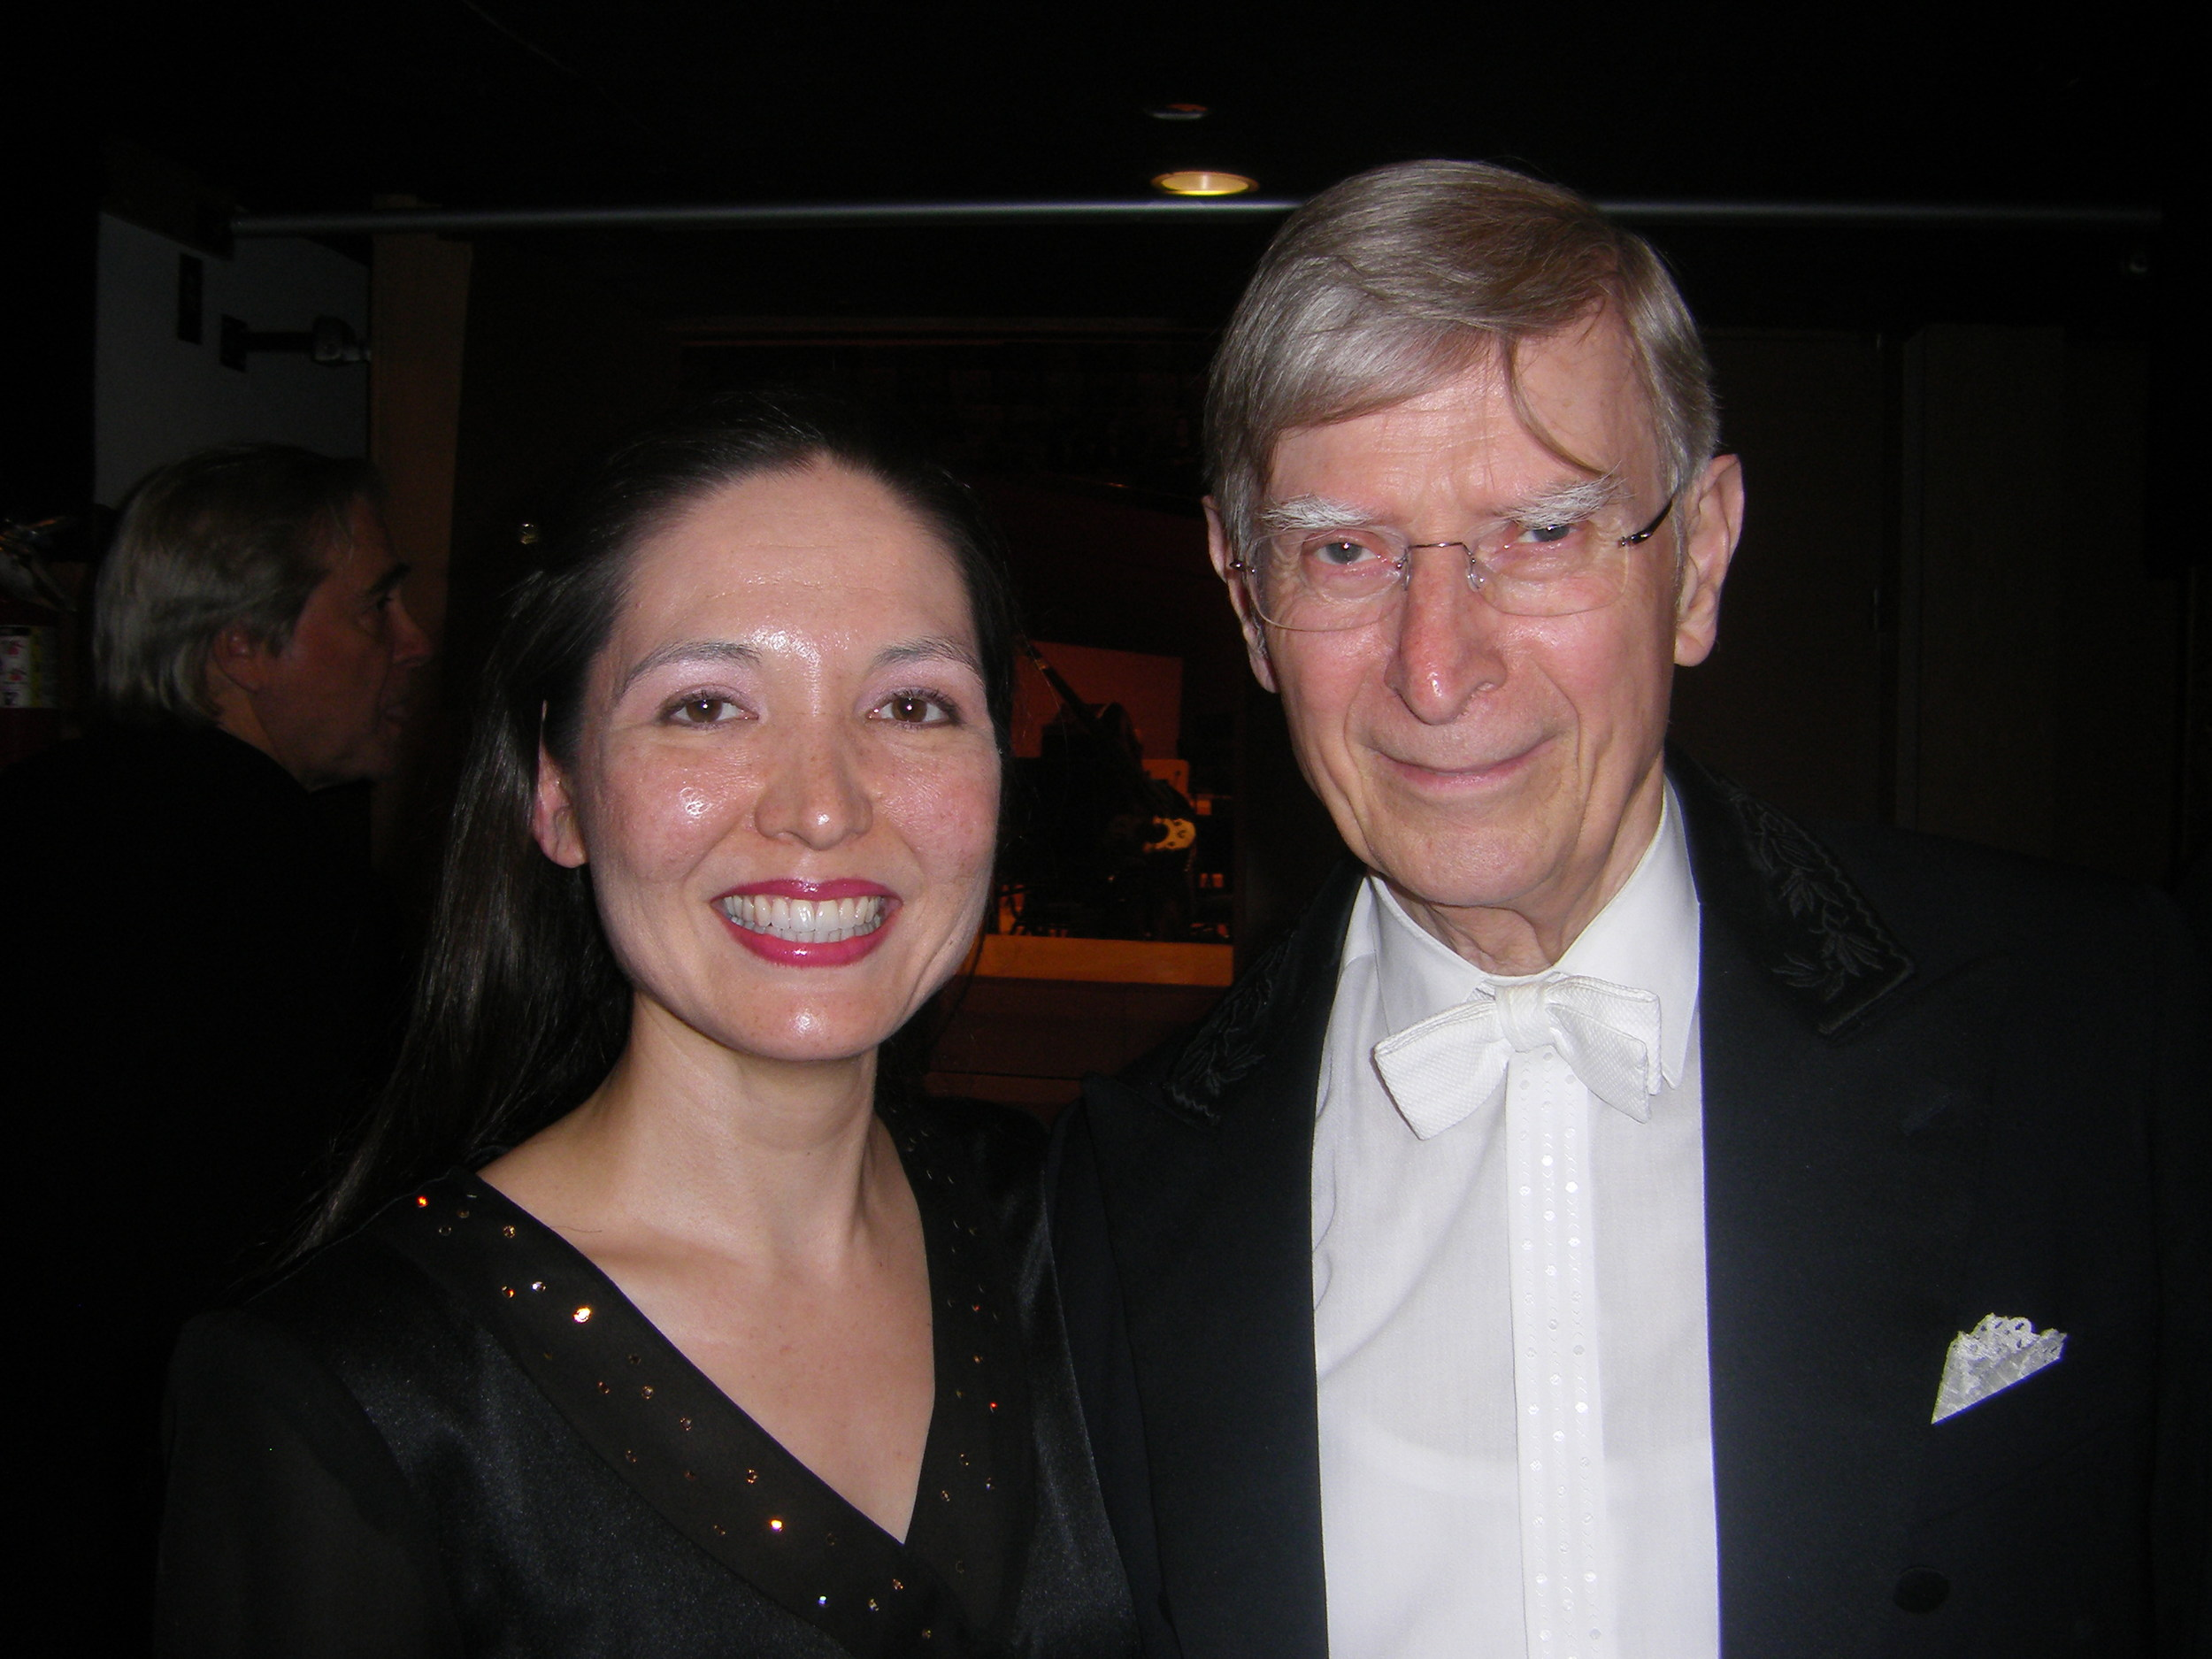 With my Swedish grandfather, Herbert Blomstedt (just kidding!)